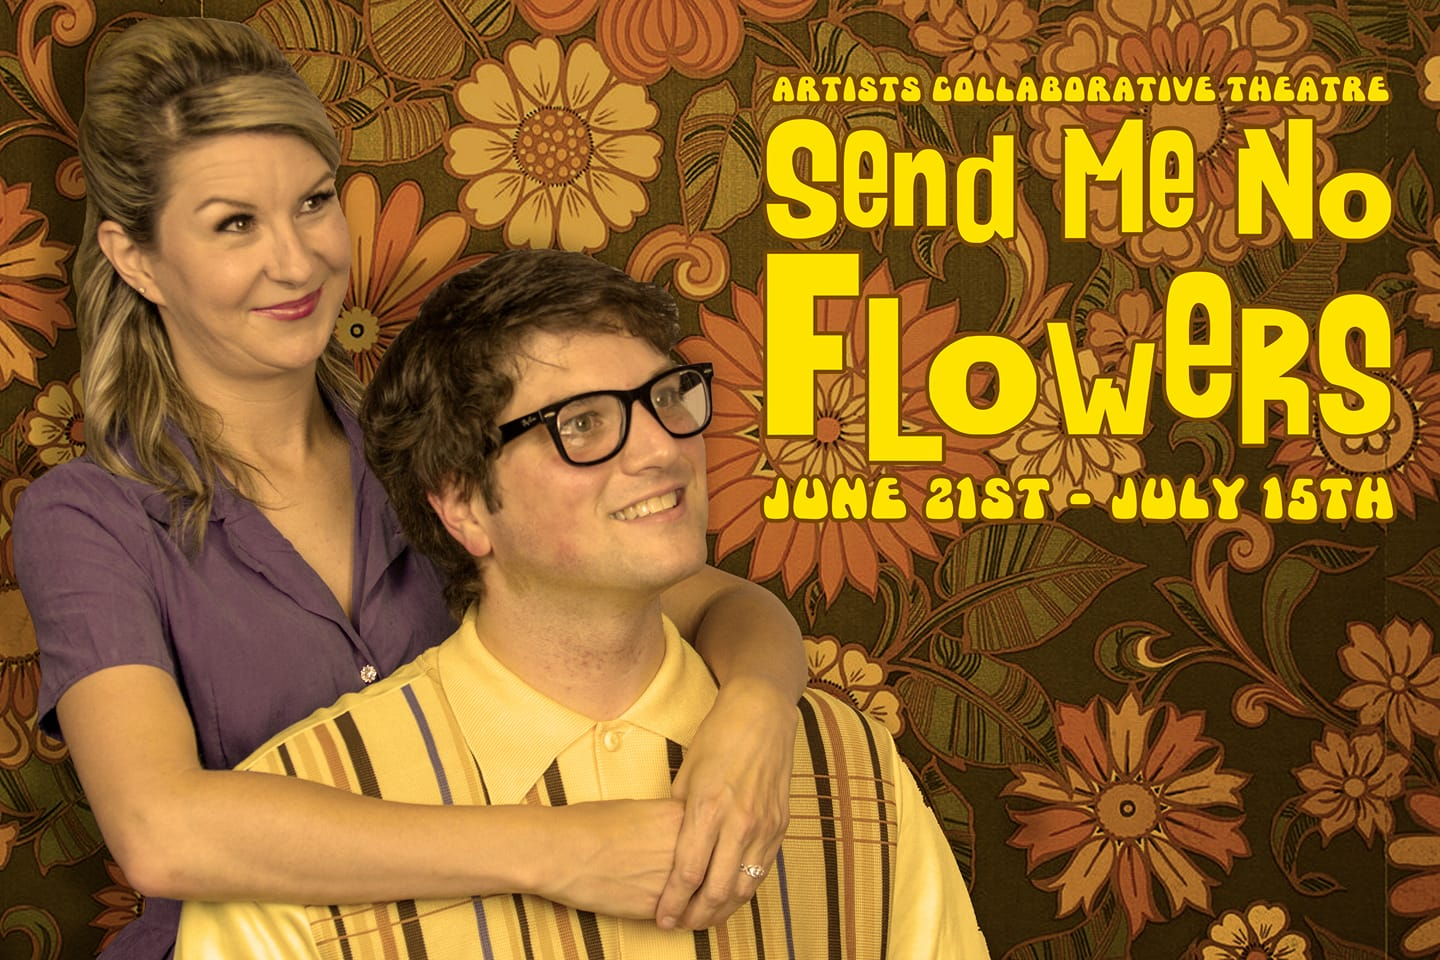 Send Me No Flowers Opens at Appalachian Collaborative Theatre